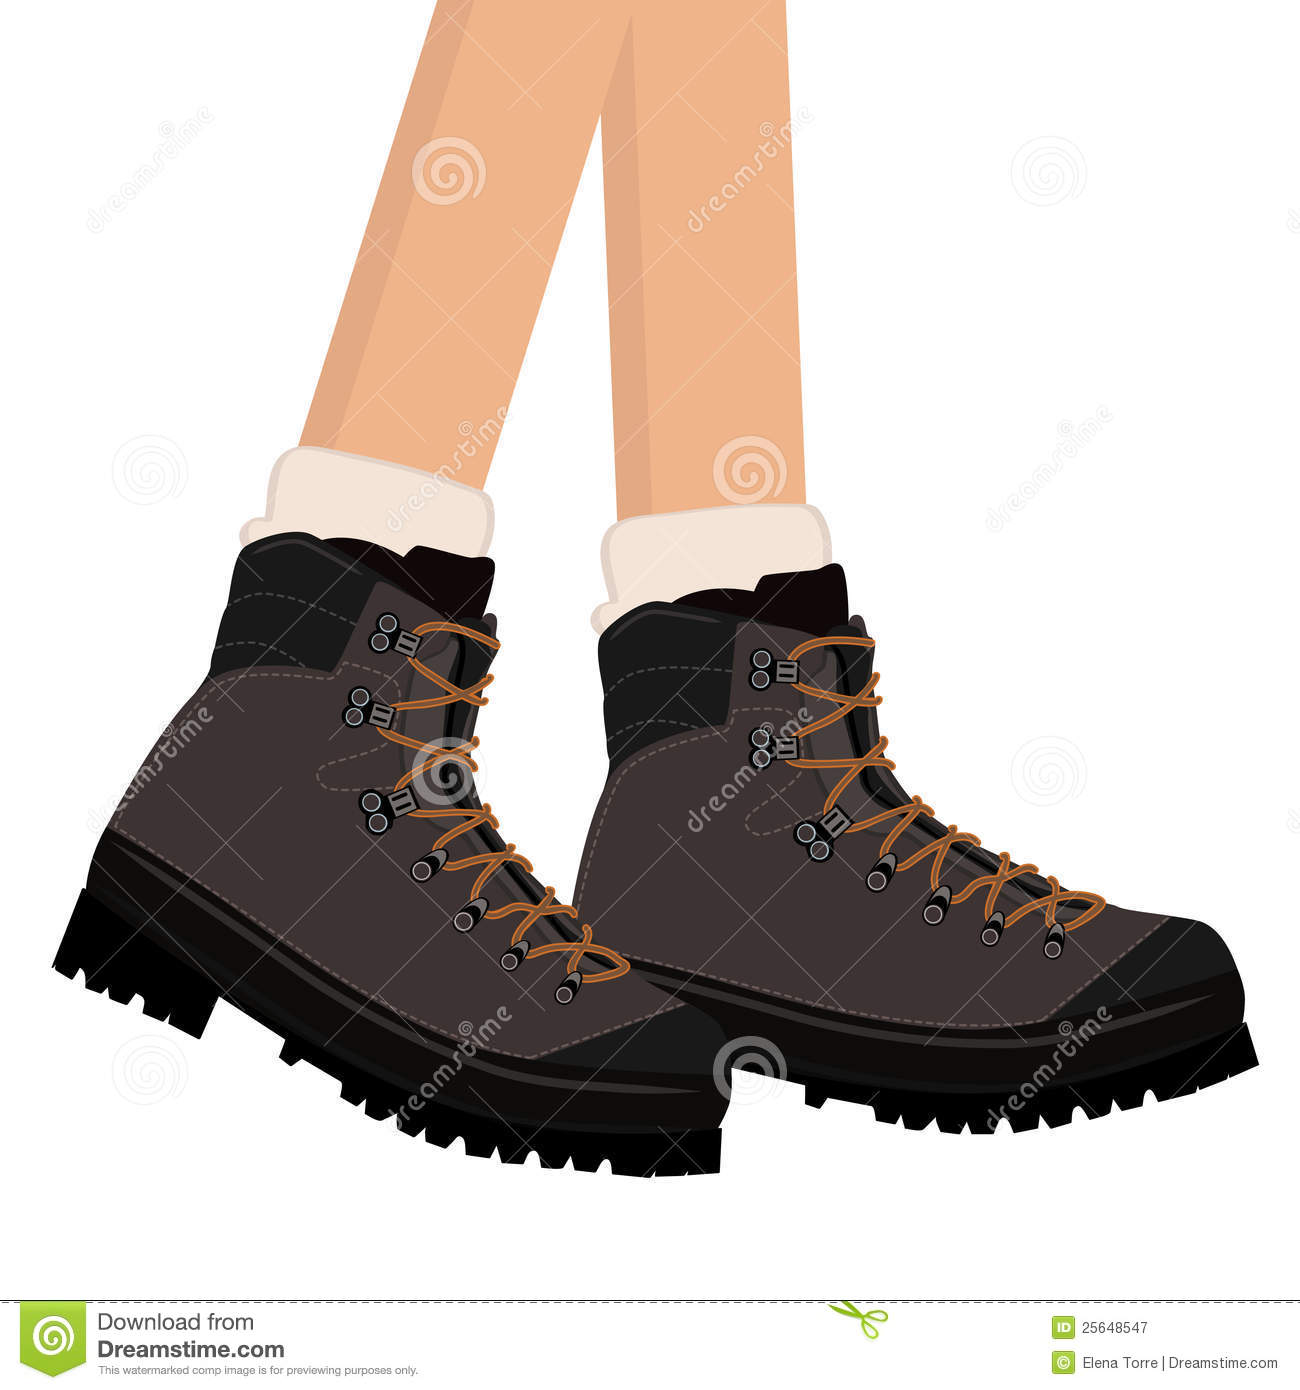 Hiking Boots Vector Stock Vector Illustration Of Leather 25648547